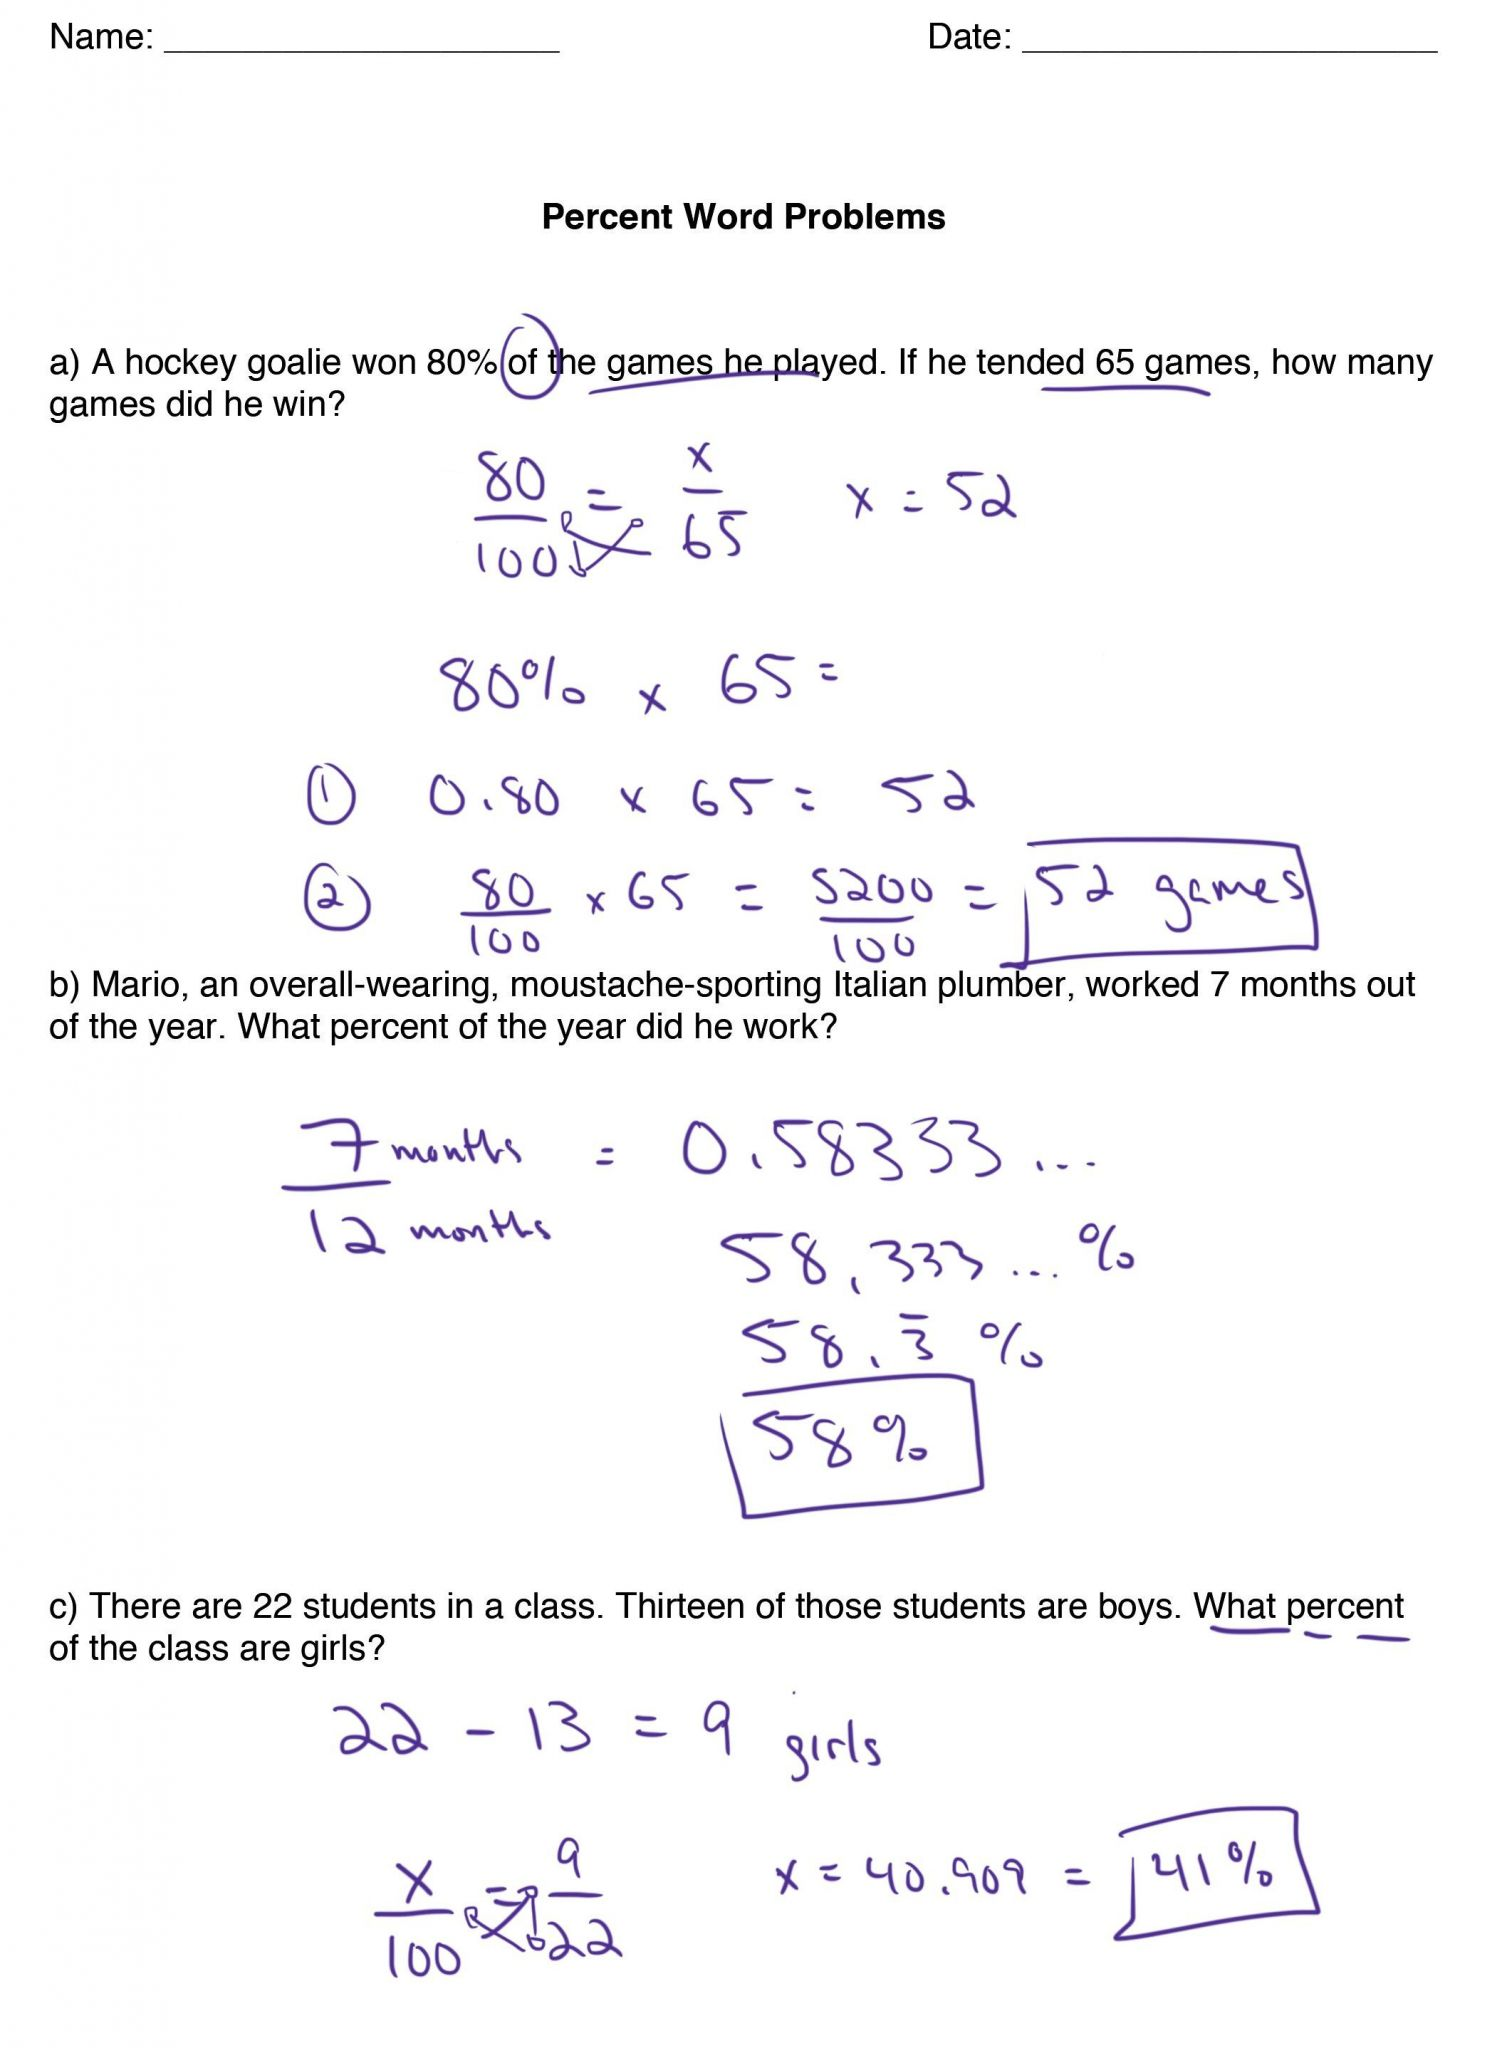 percent word problems worksheet with answers printable worksheets and activities for teachers. Black Bedroom Furniture Sets. Home Design Ideas